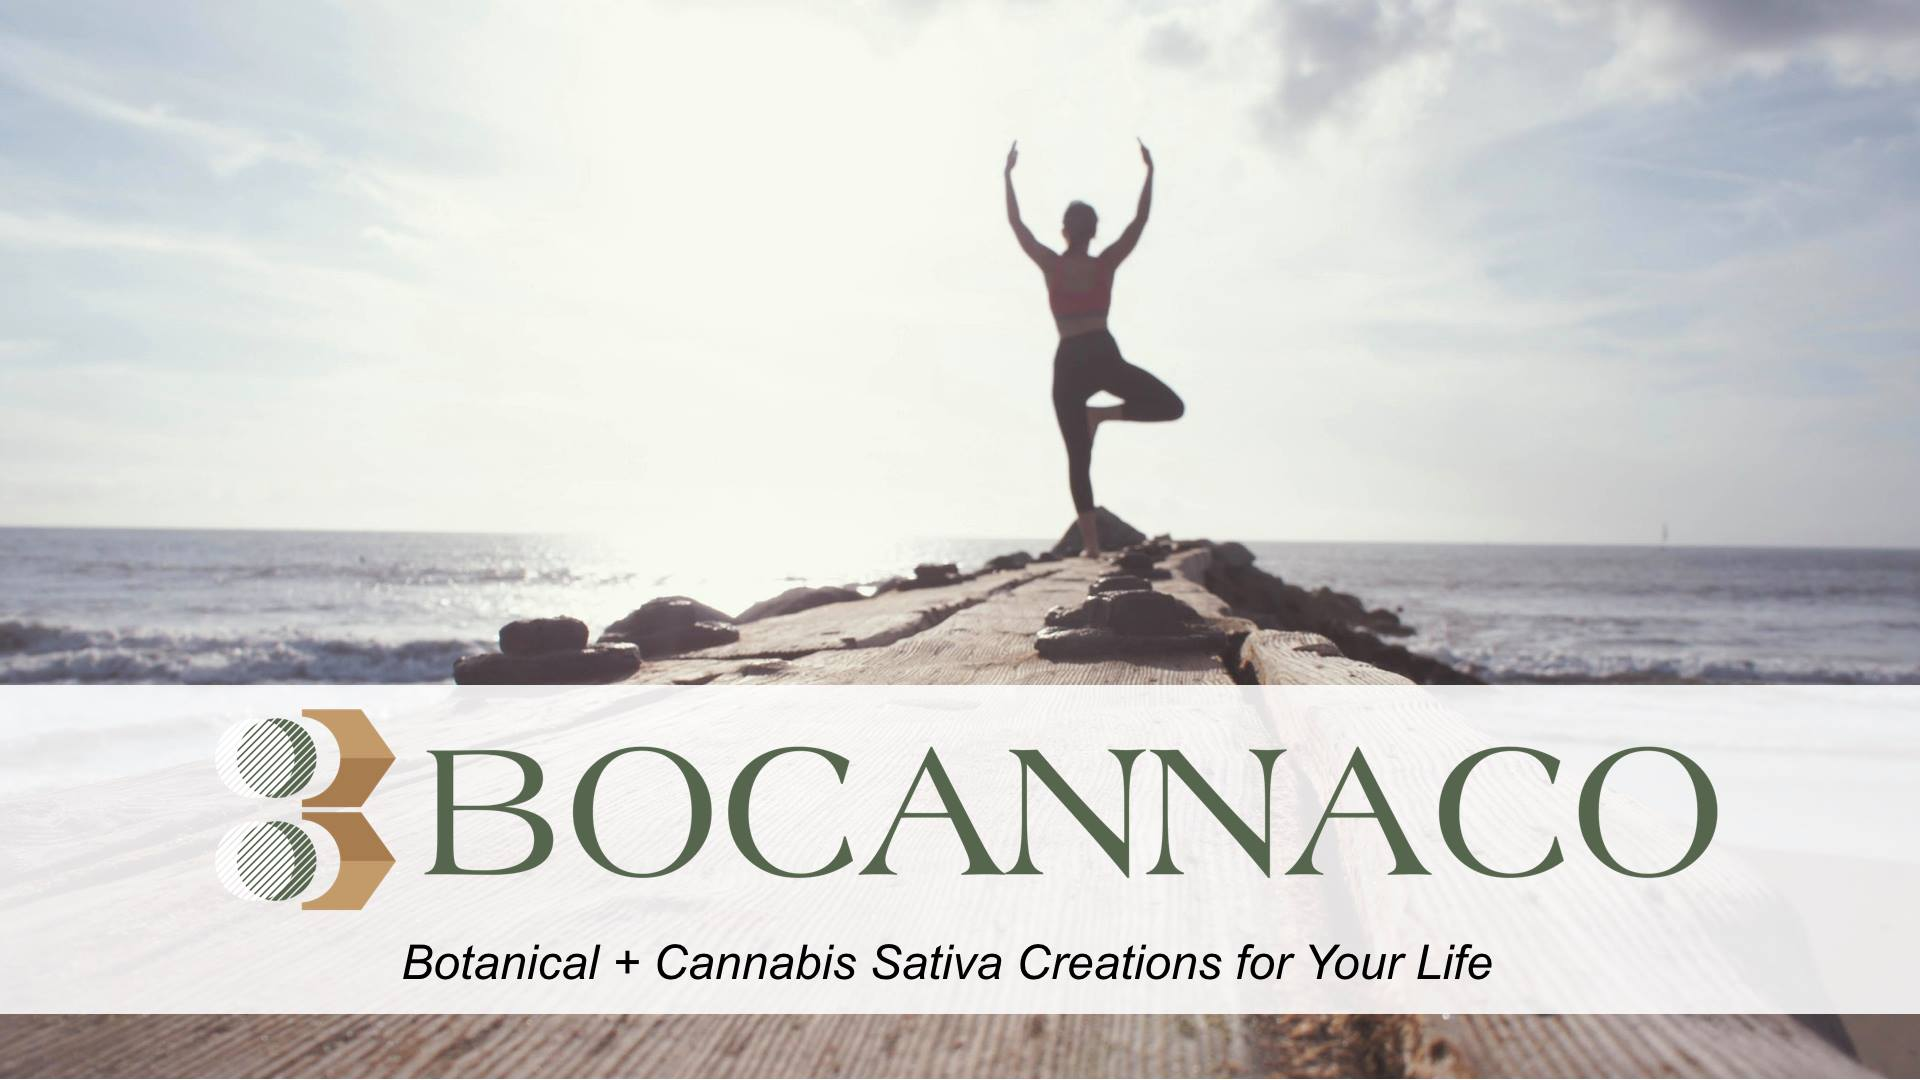 Is Bocanacco a Scam - Landing Page